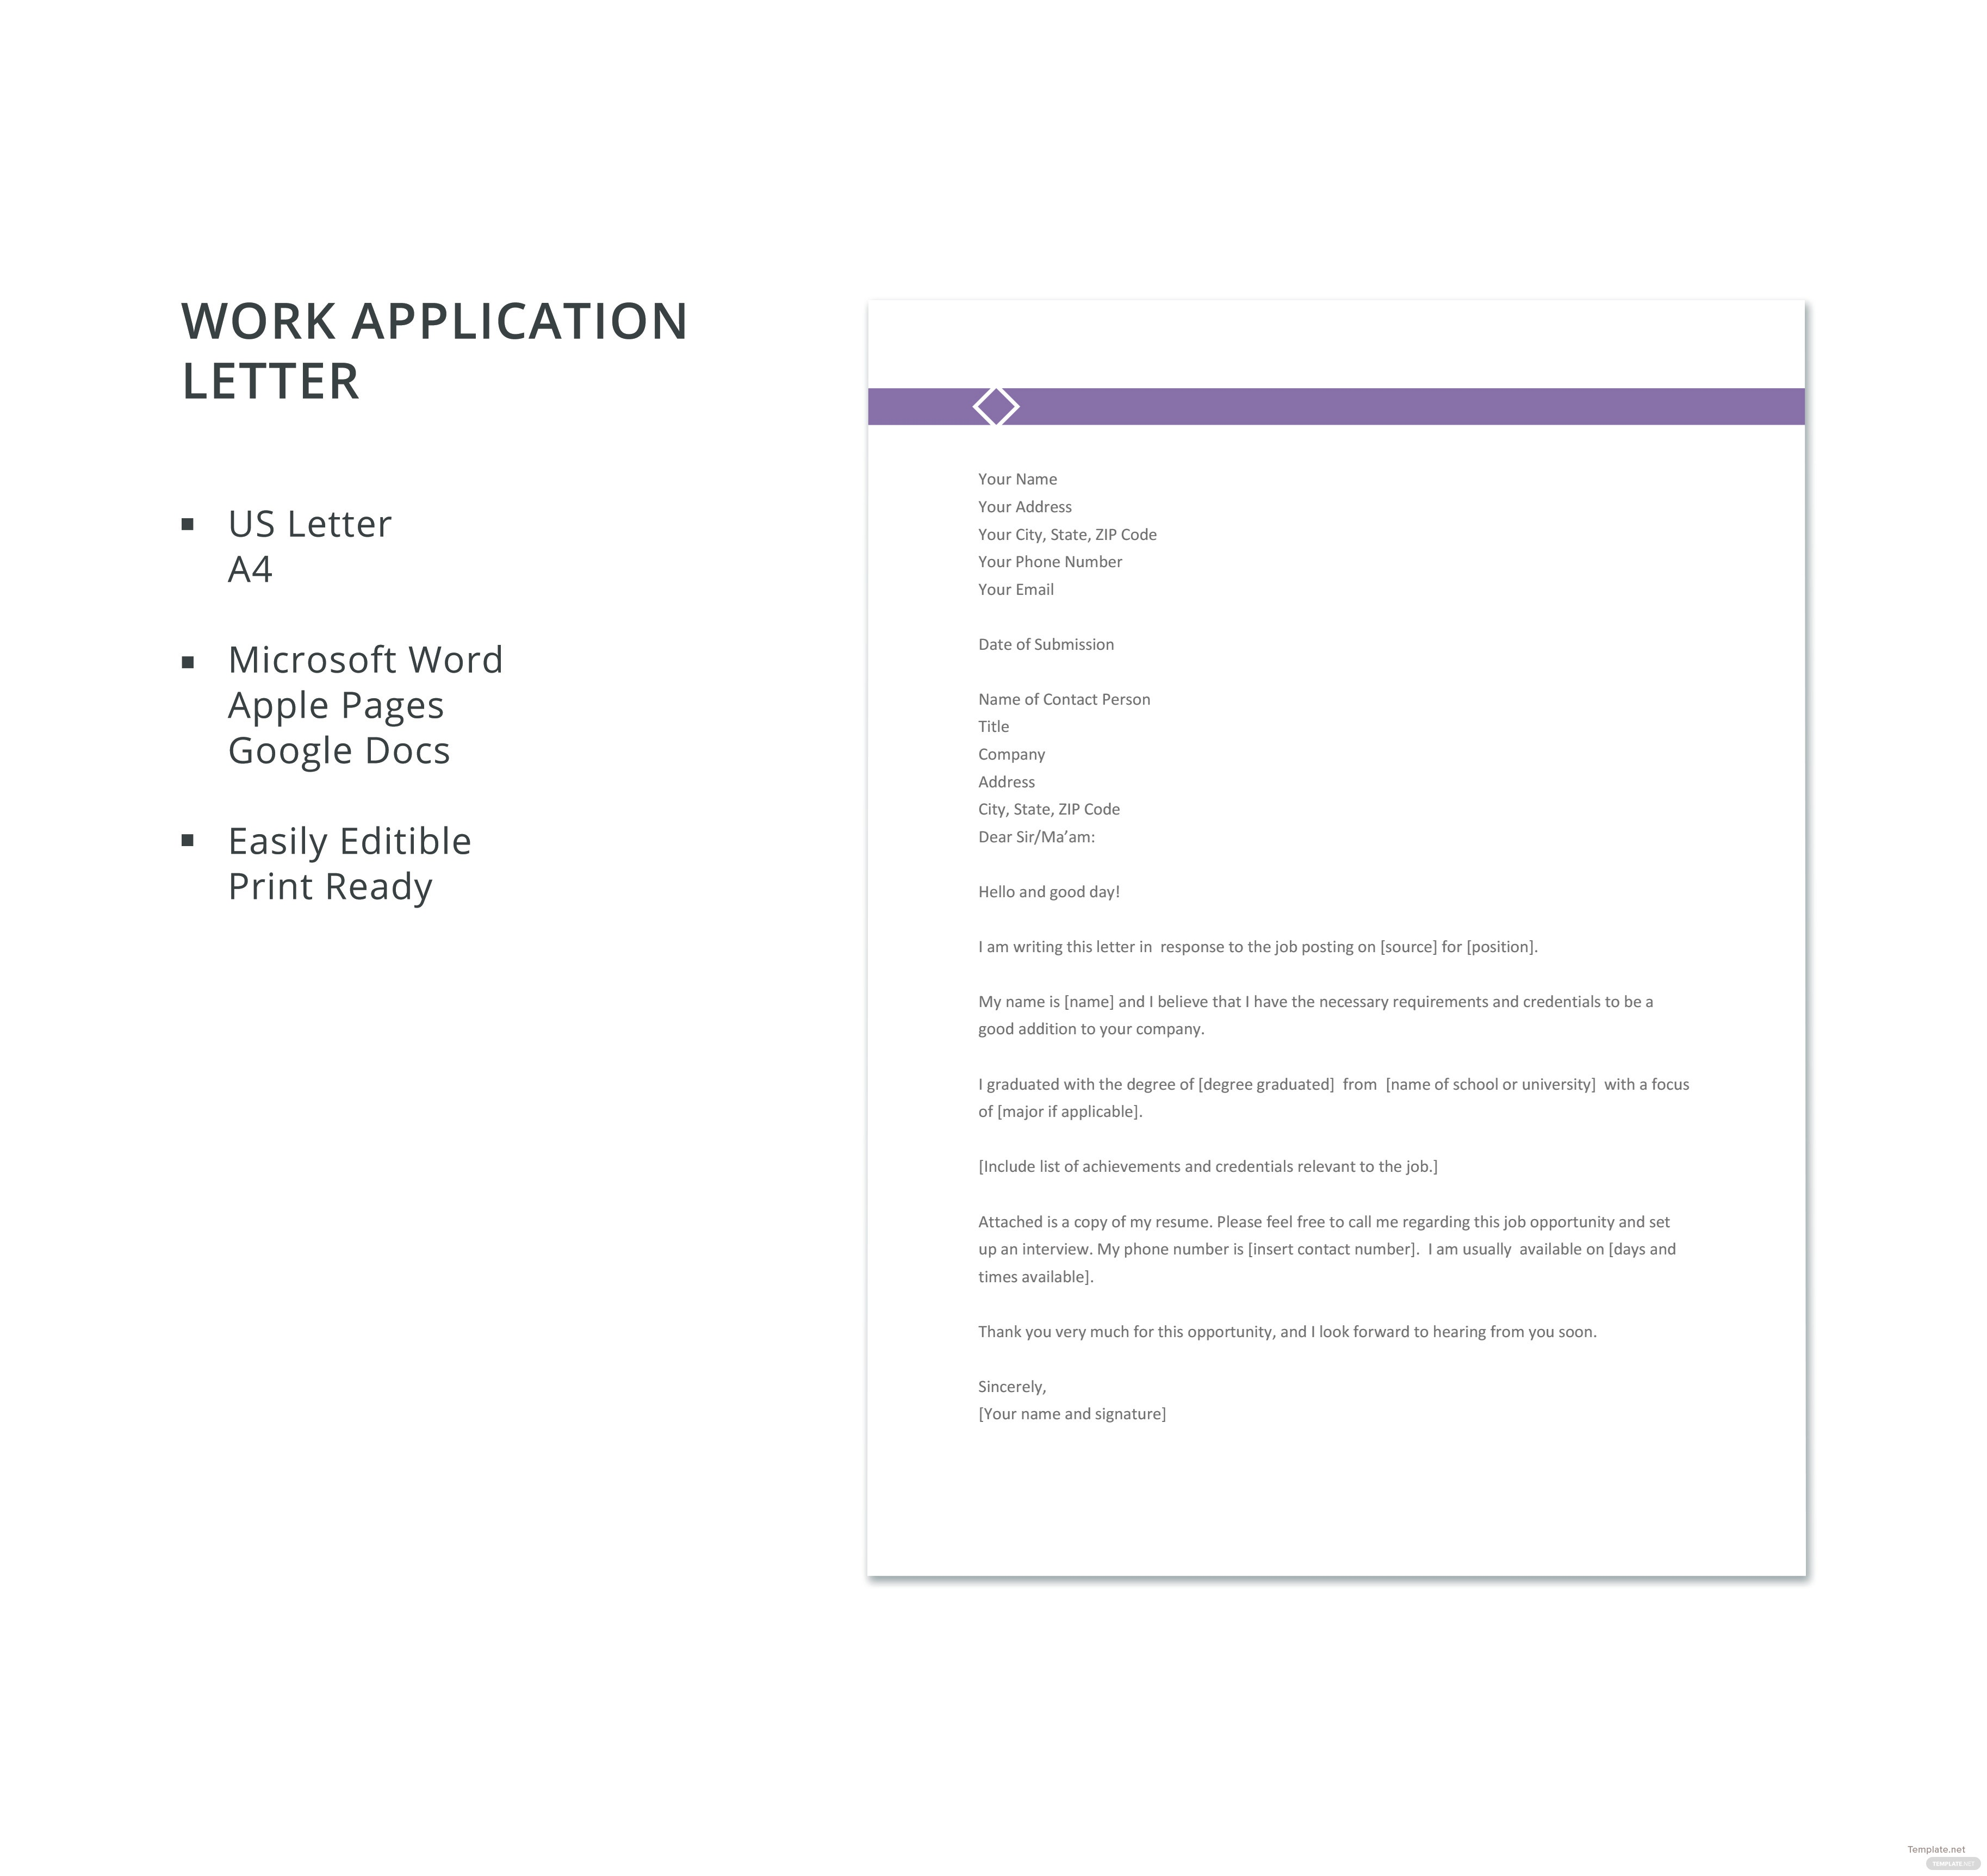 Free Work Application Letter Template in Microsoft Word, Apple Pages ...